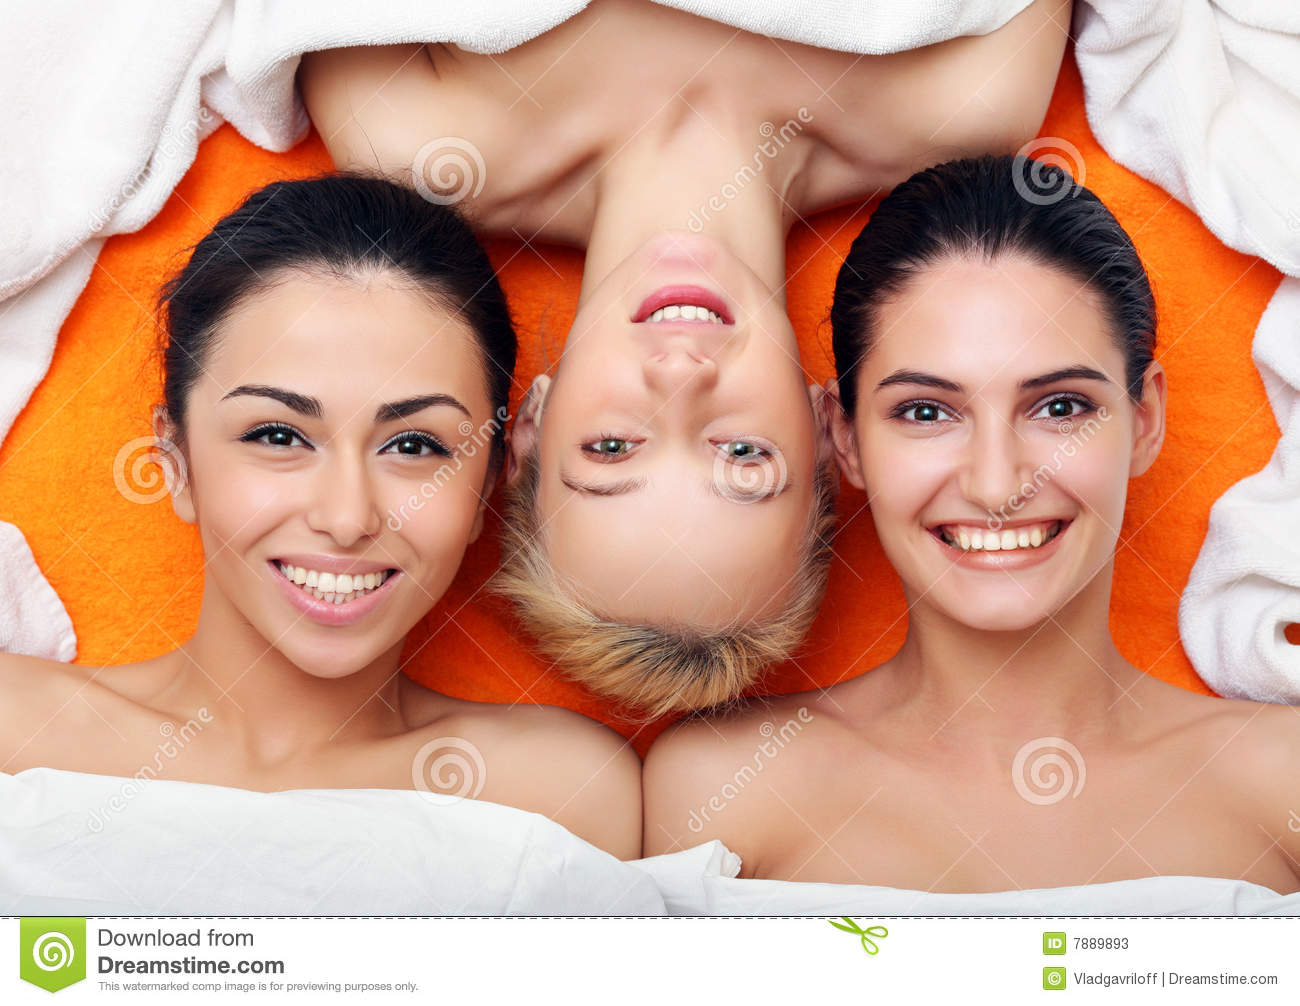 Girls in in SPA center